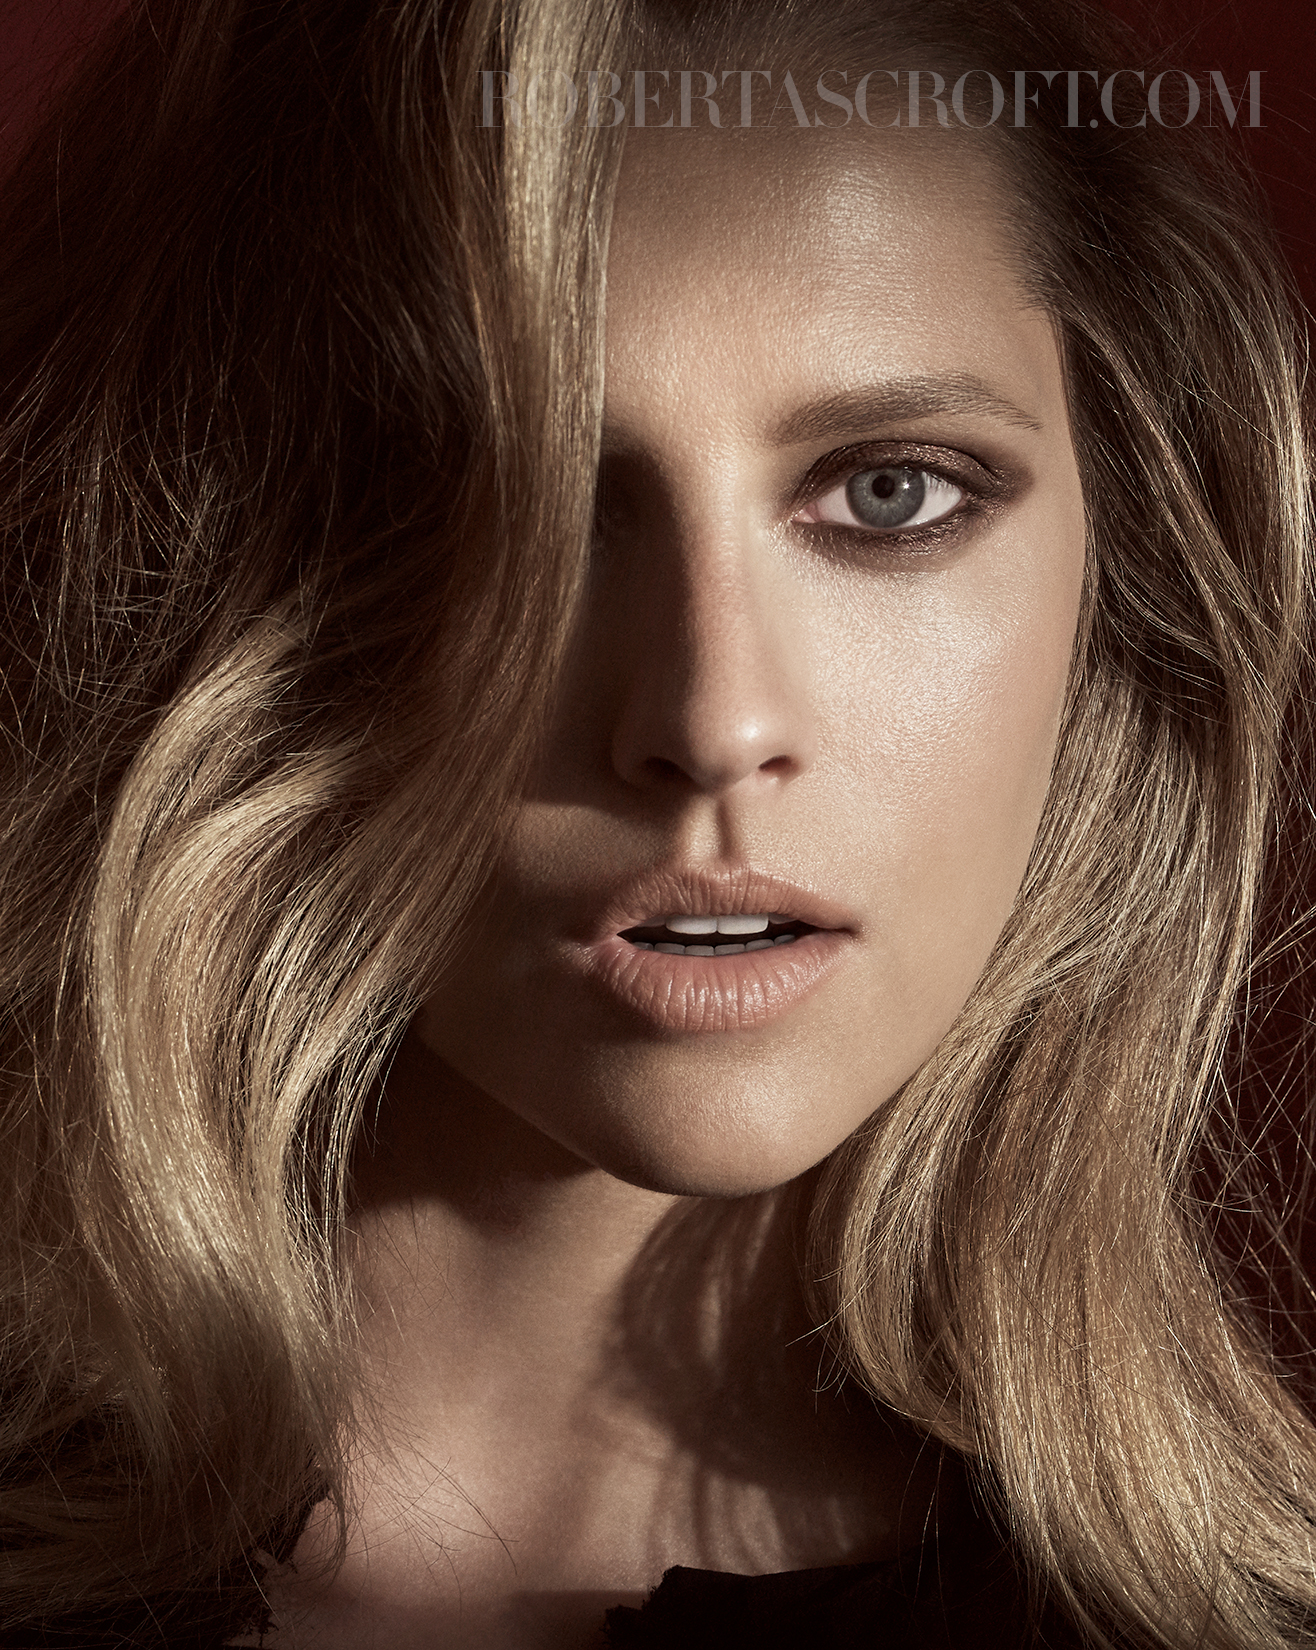 Teresa-Palmer-by-Robert-Ascroft-07